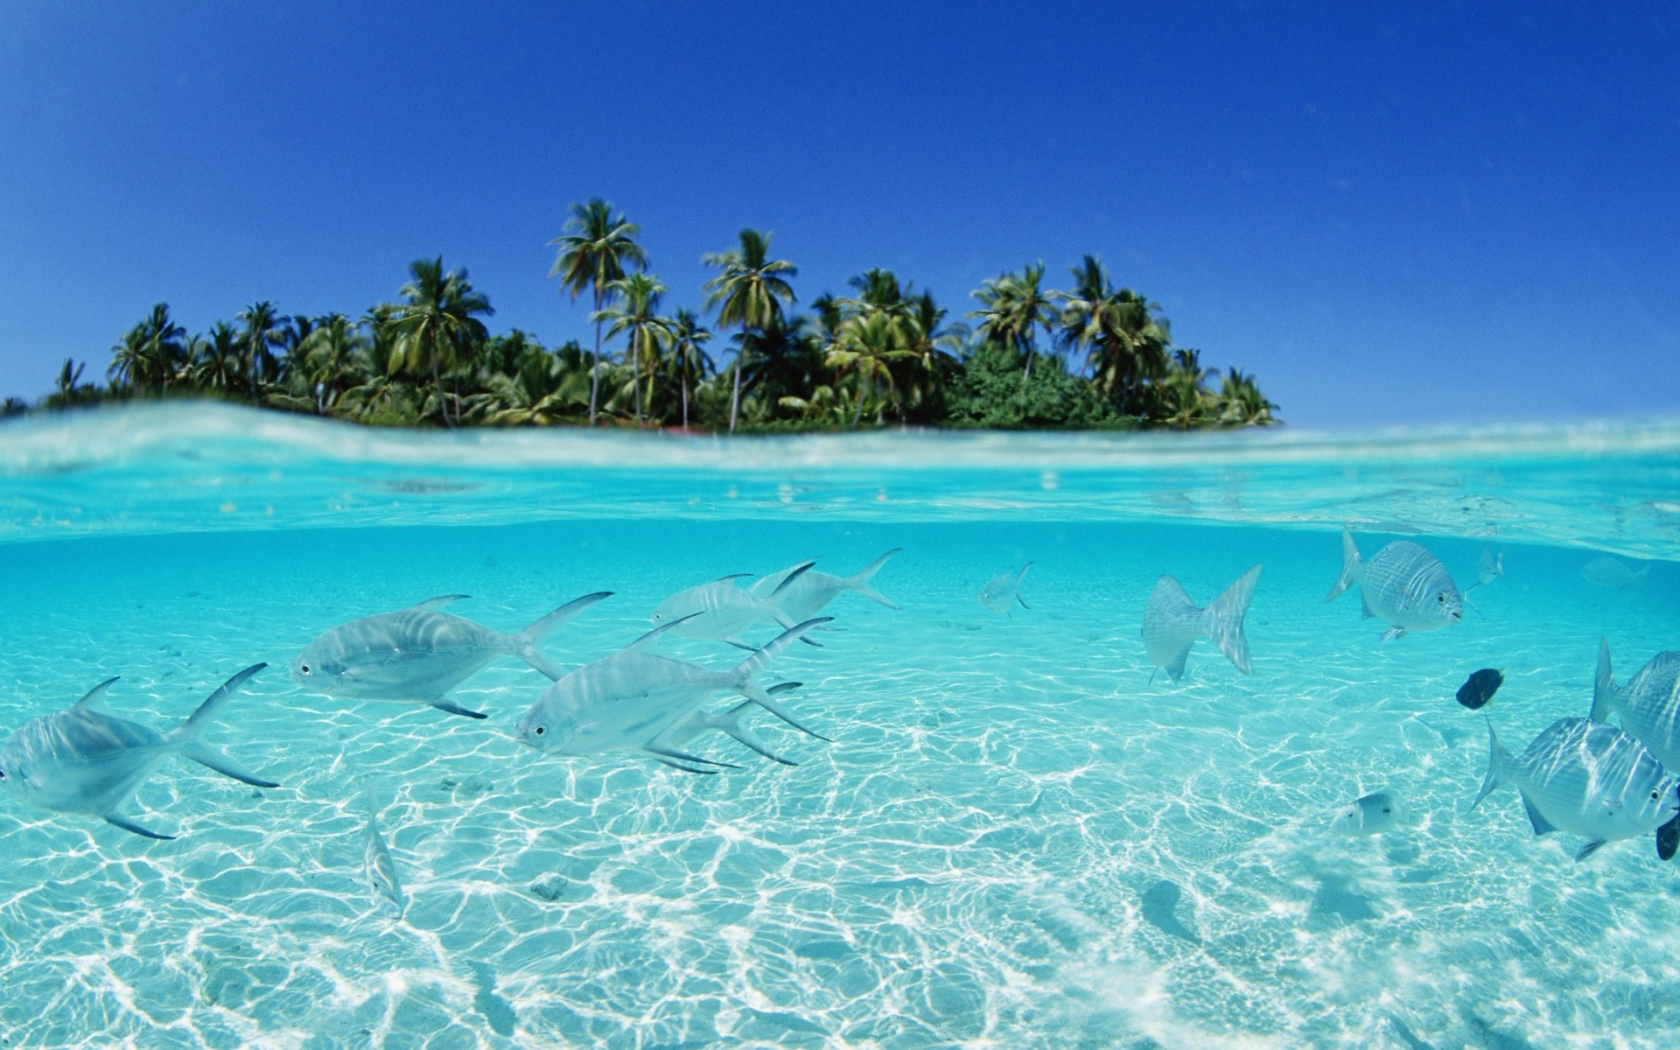 Free Download Maldives Beach Fish Wallpapers 1680x1050 For Your